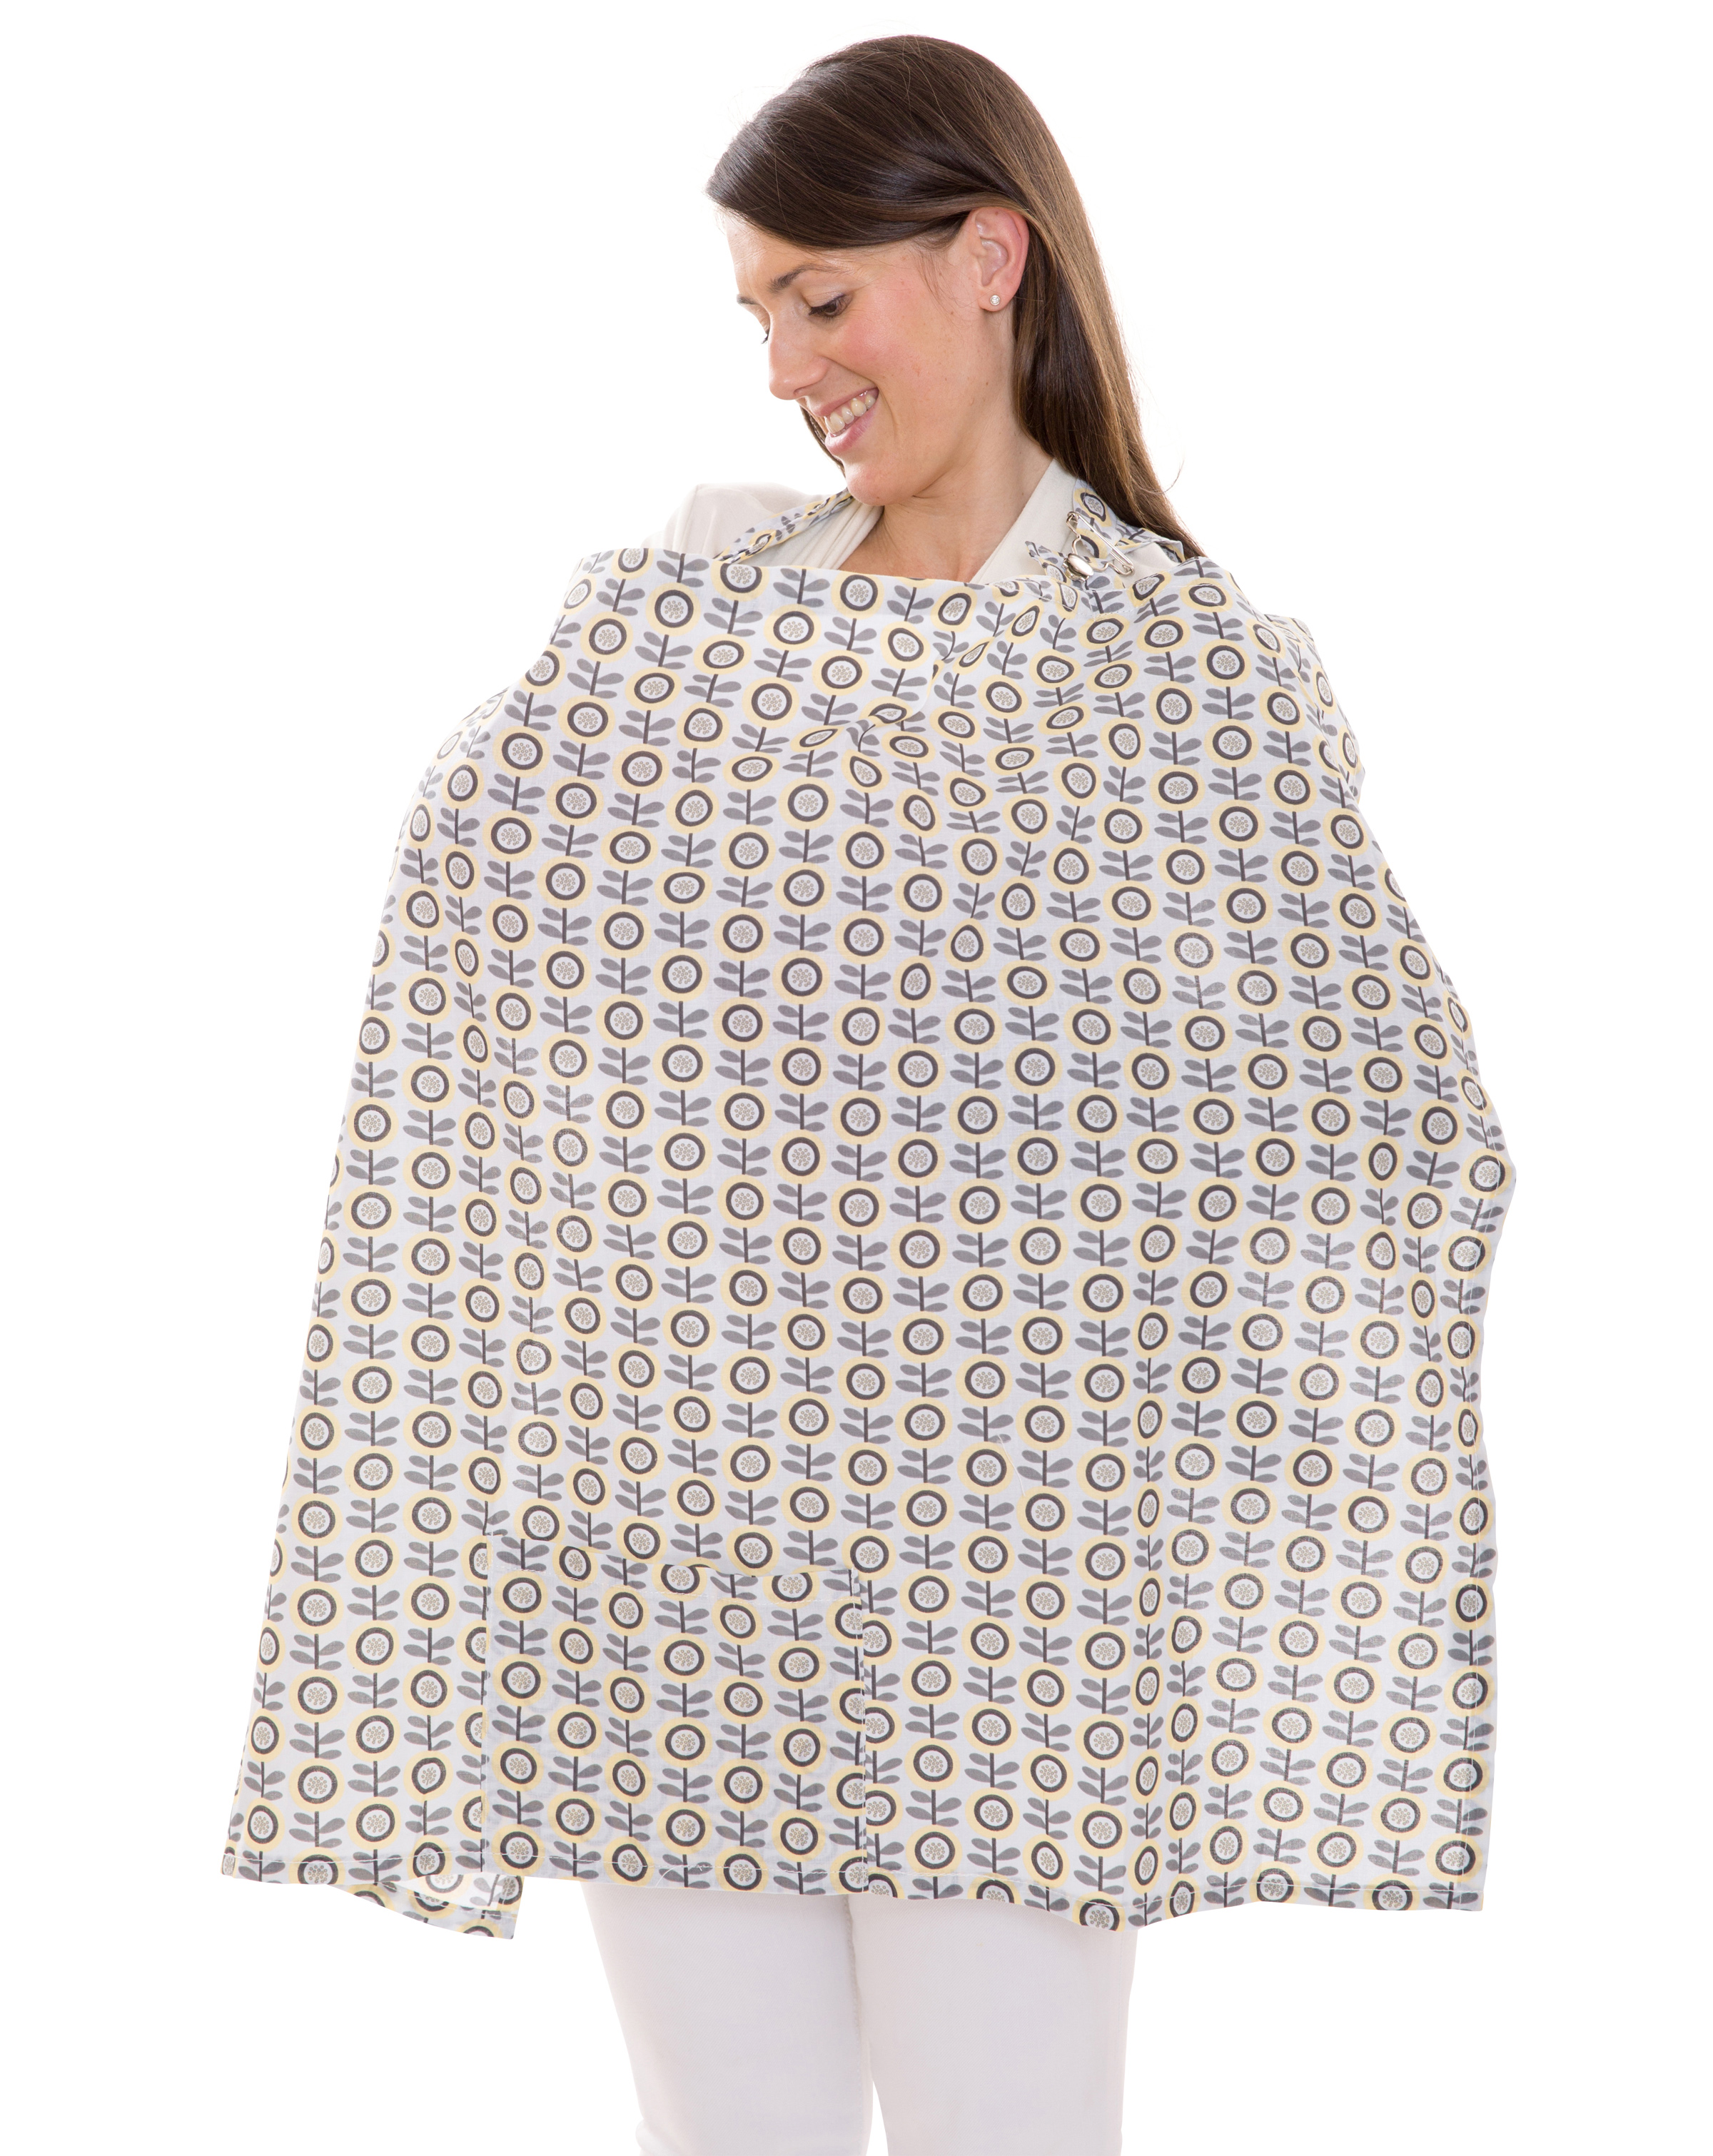 Nursing Cover Breastfeeding Covers And Accessories My